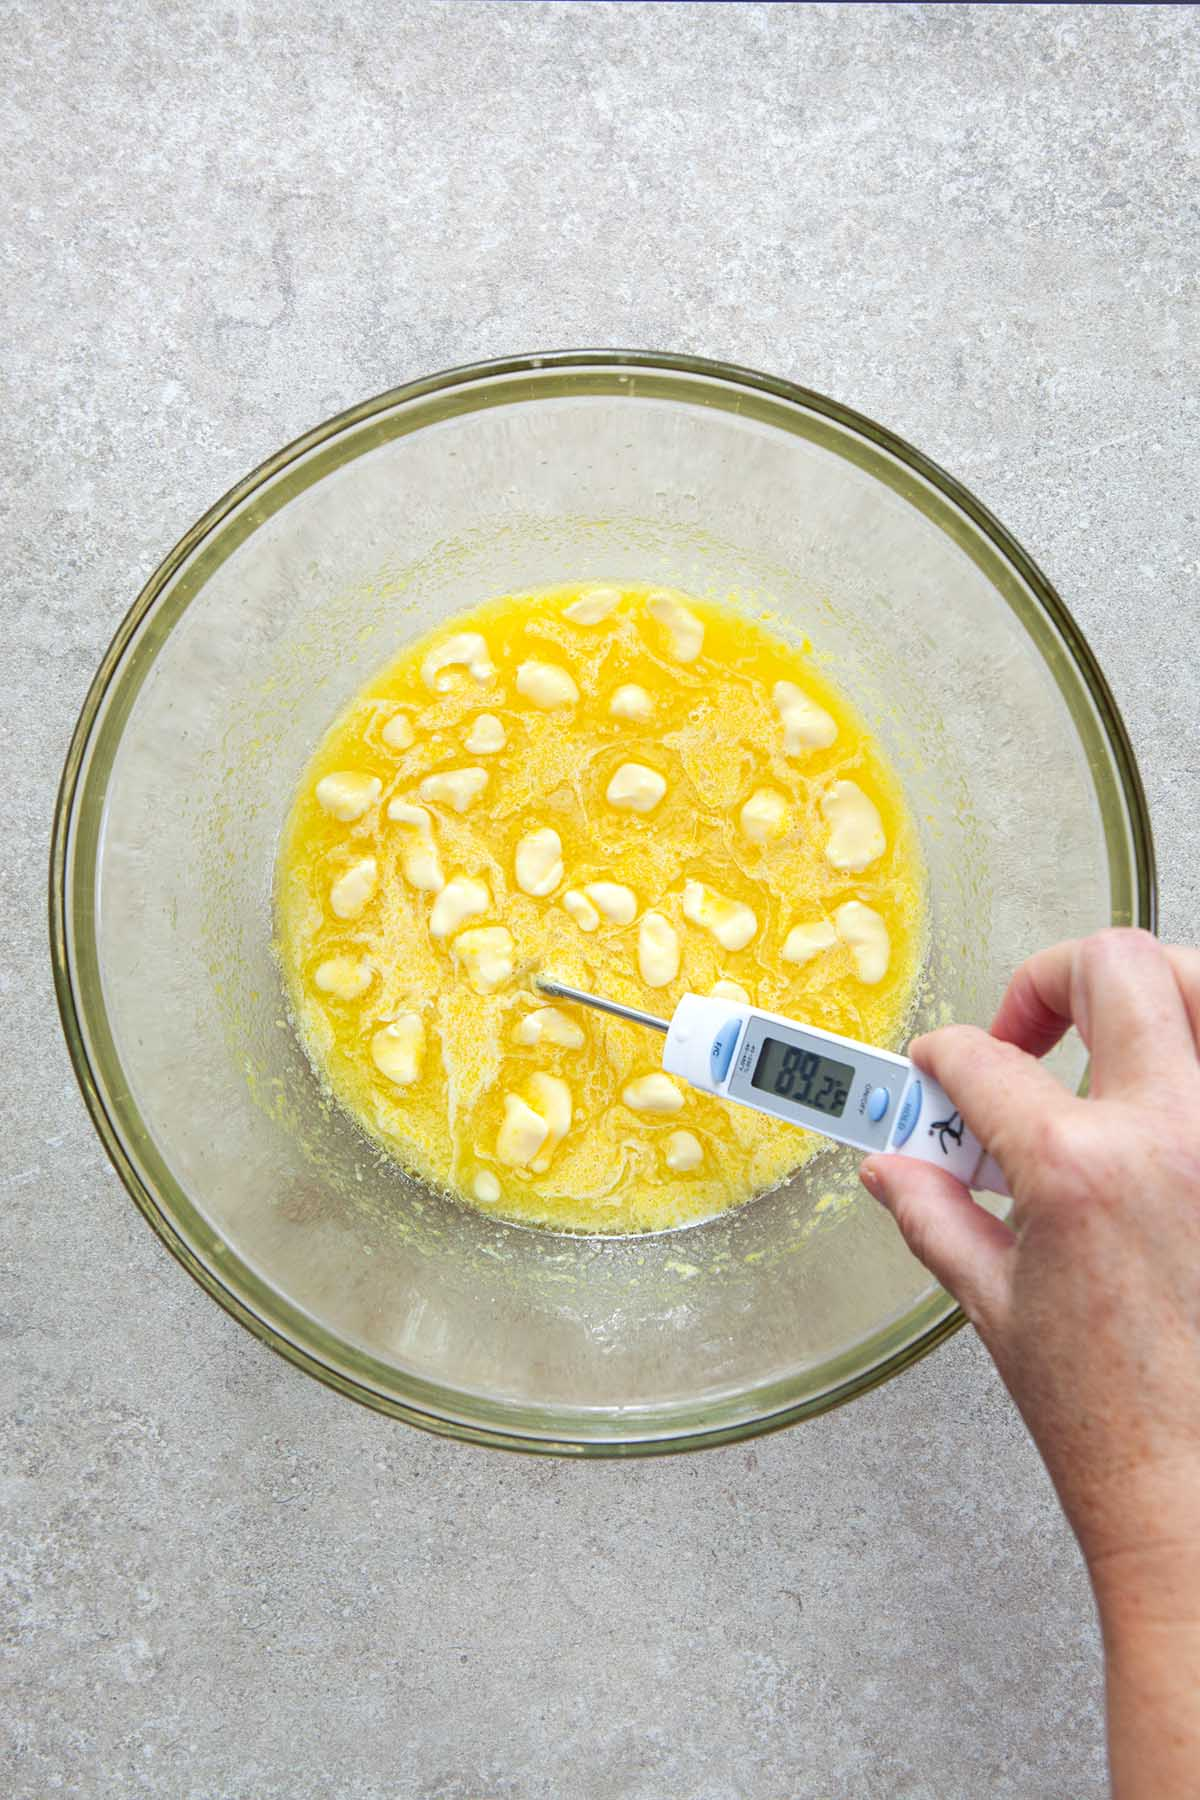 A hand taking a temperature reading with a thermometer in a glass bowl of eggs, lemon juice, and butter.